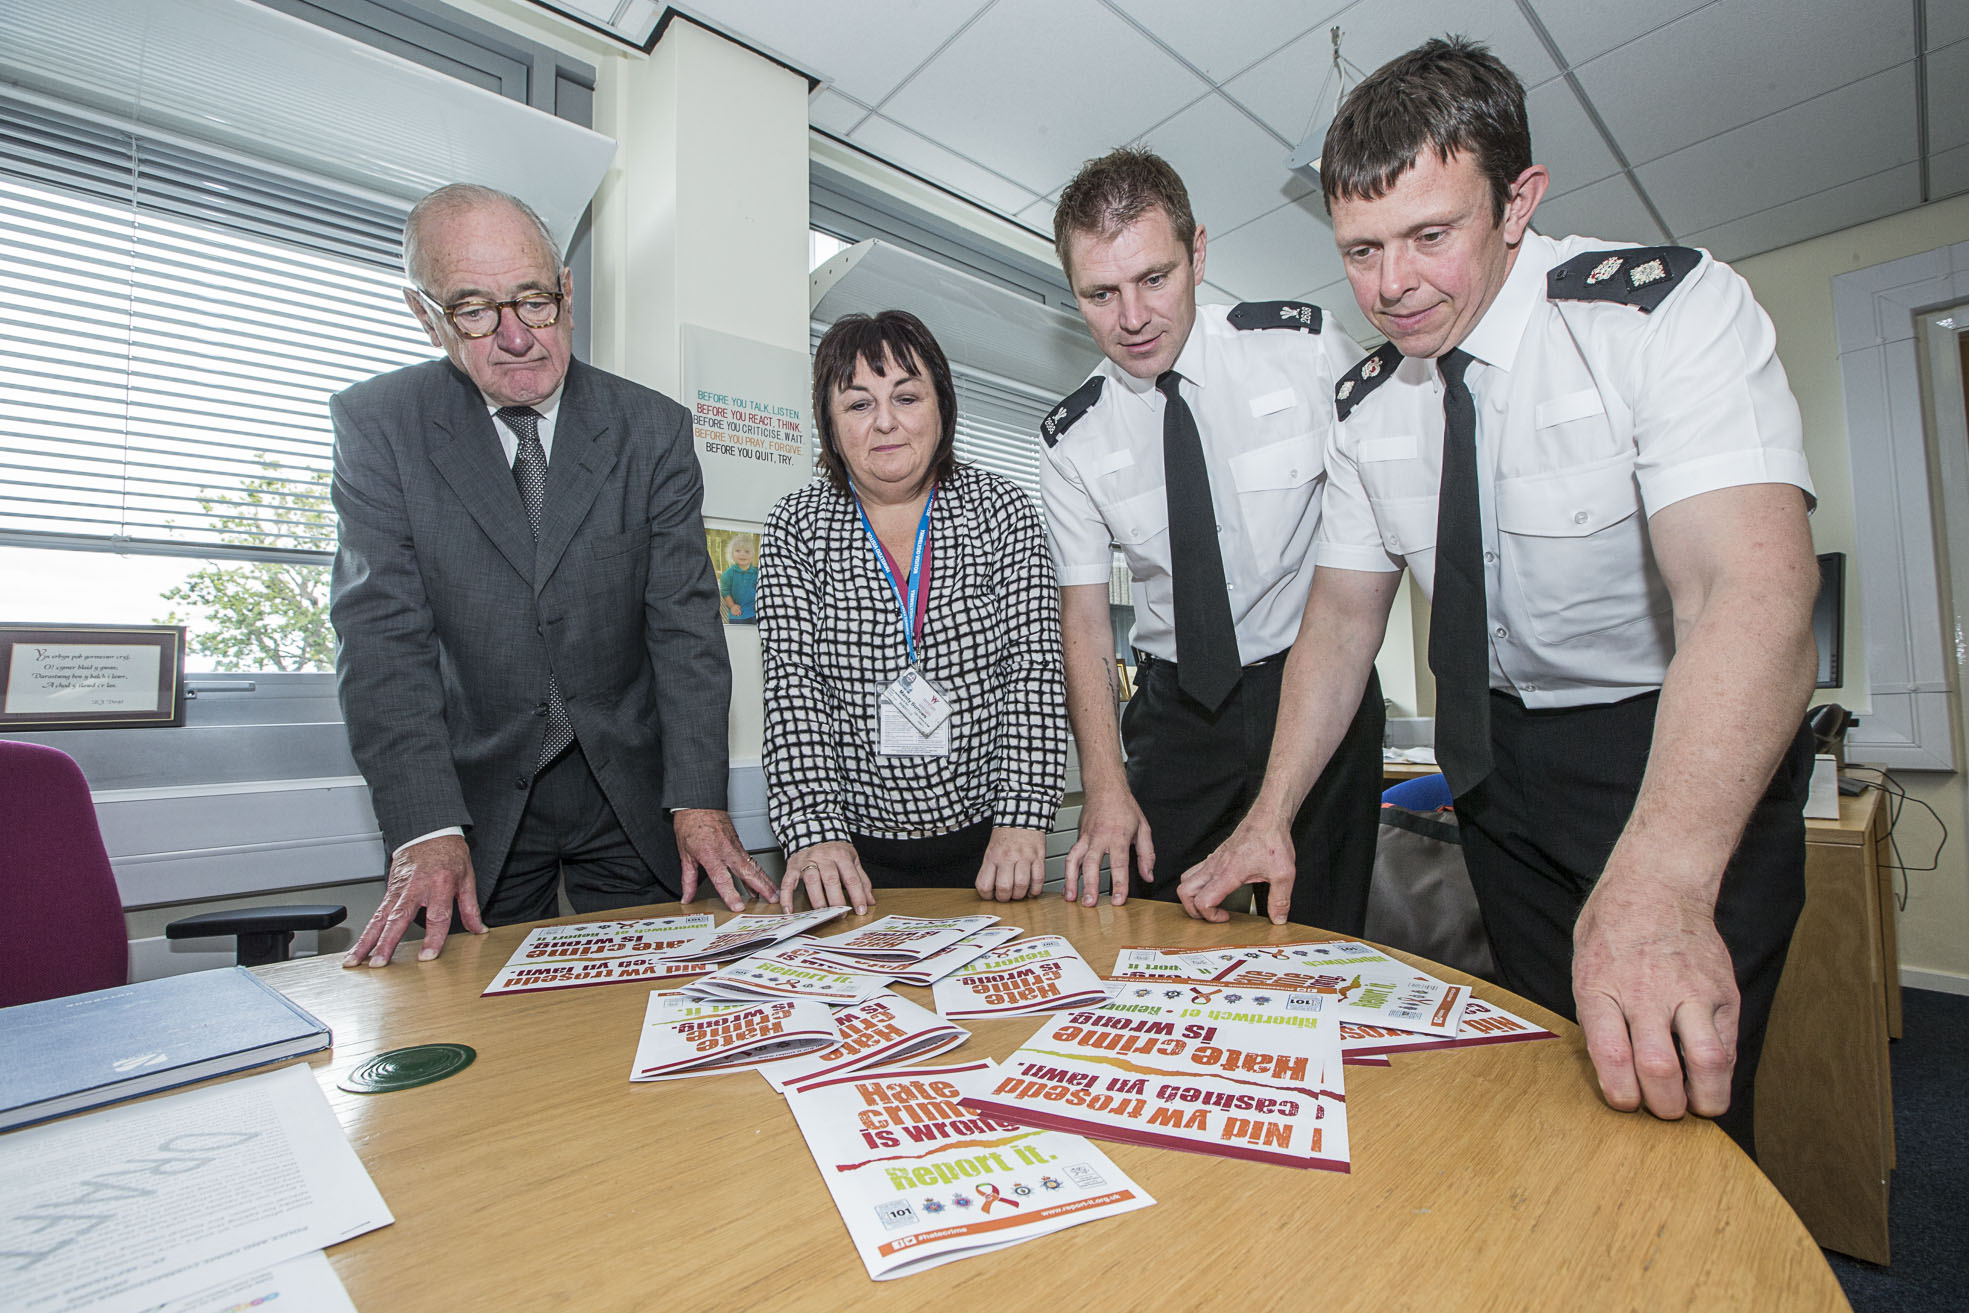 Hate Crime. Police and Crime Commissioner Winston Roddick with Mandy Burrows, PC Rob Newton-Miller and Chief Superintendant Jeremy Vaughan